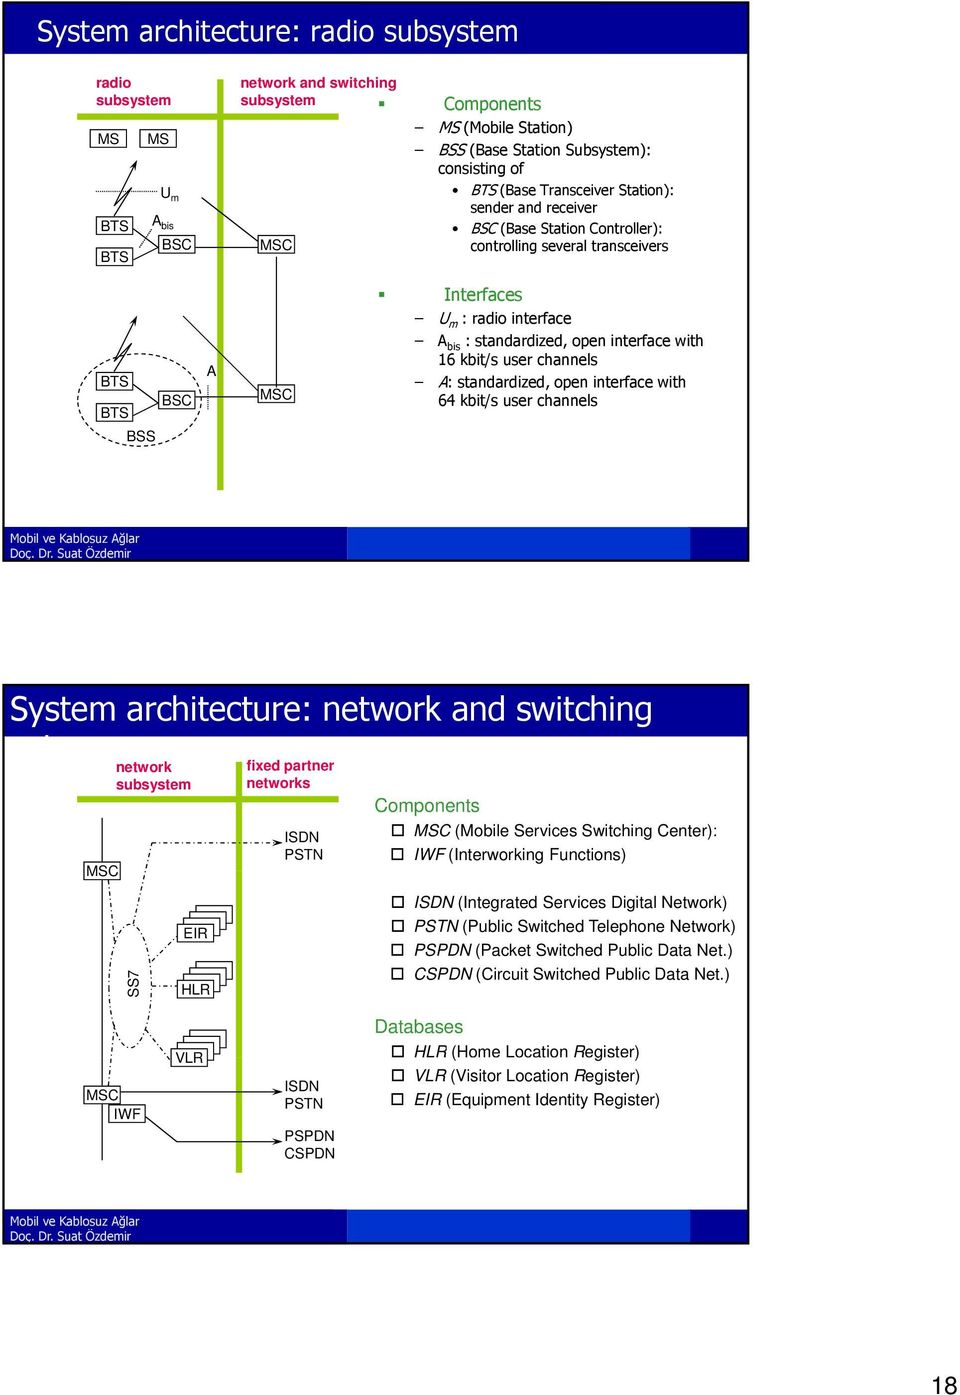 interface with 16 kbit/s user channels A: standardized, open interface with 64 kbit/s user channels System architecture: network and switching subsystem MSC network subsystem SS7 EIR HLR fixed